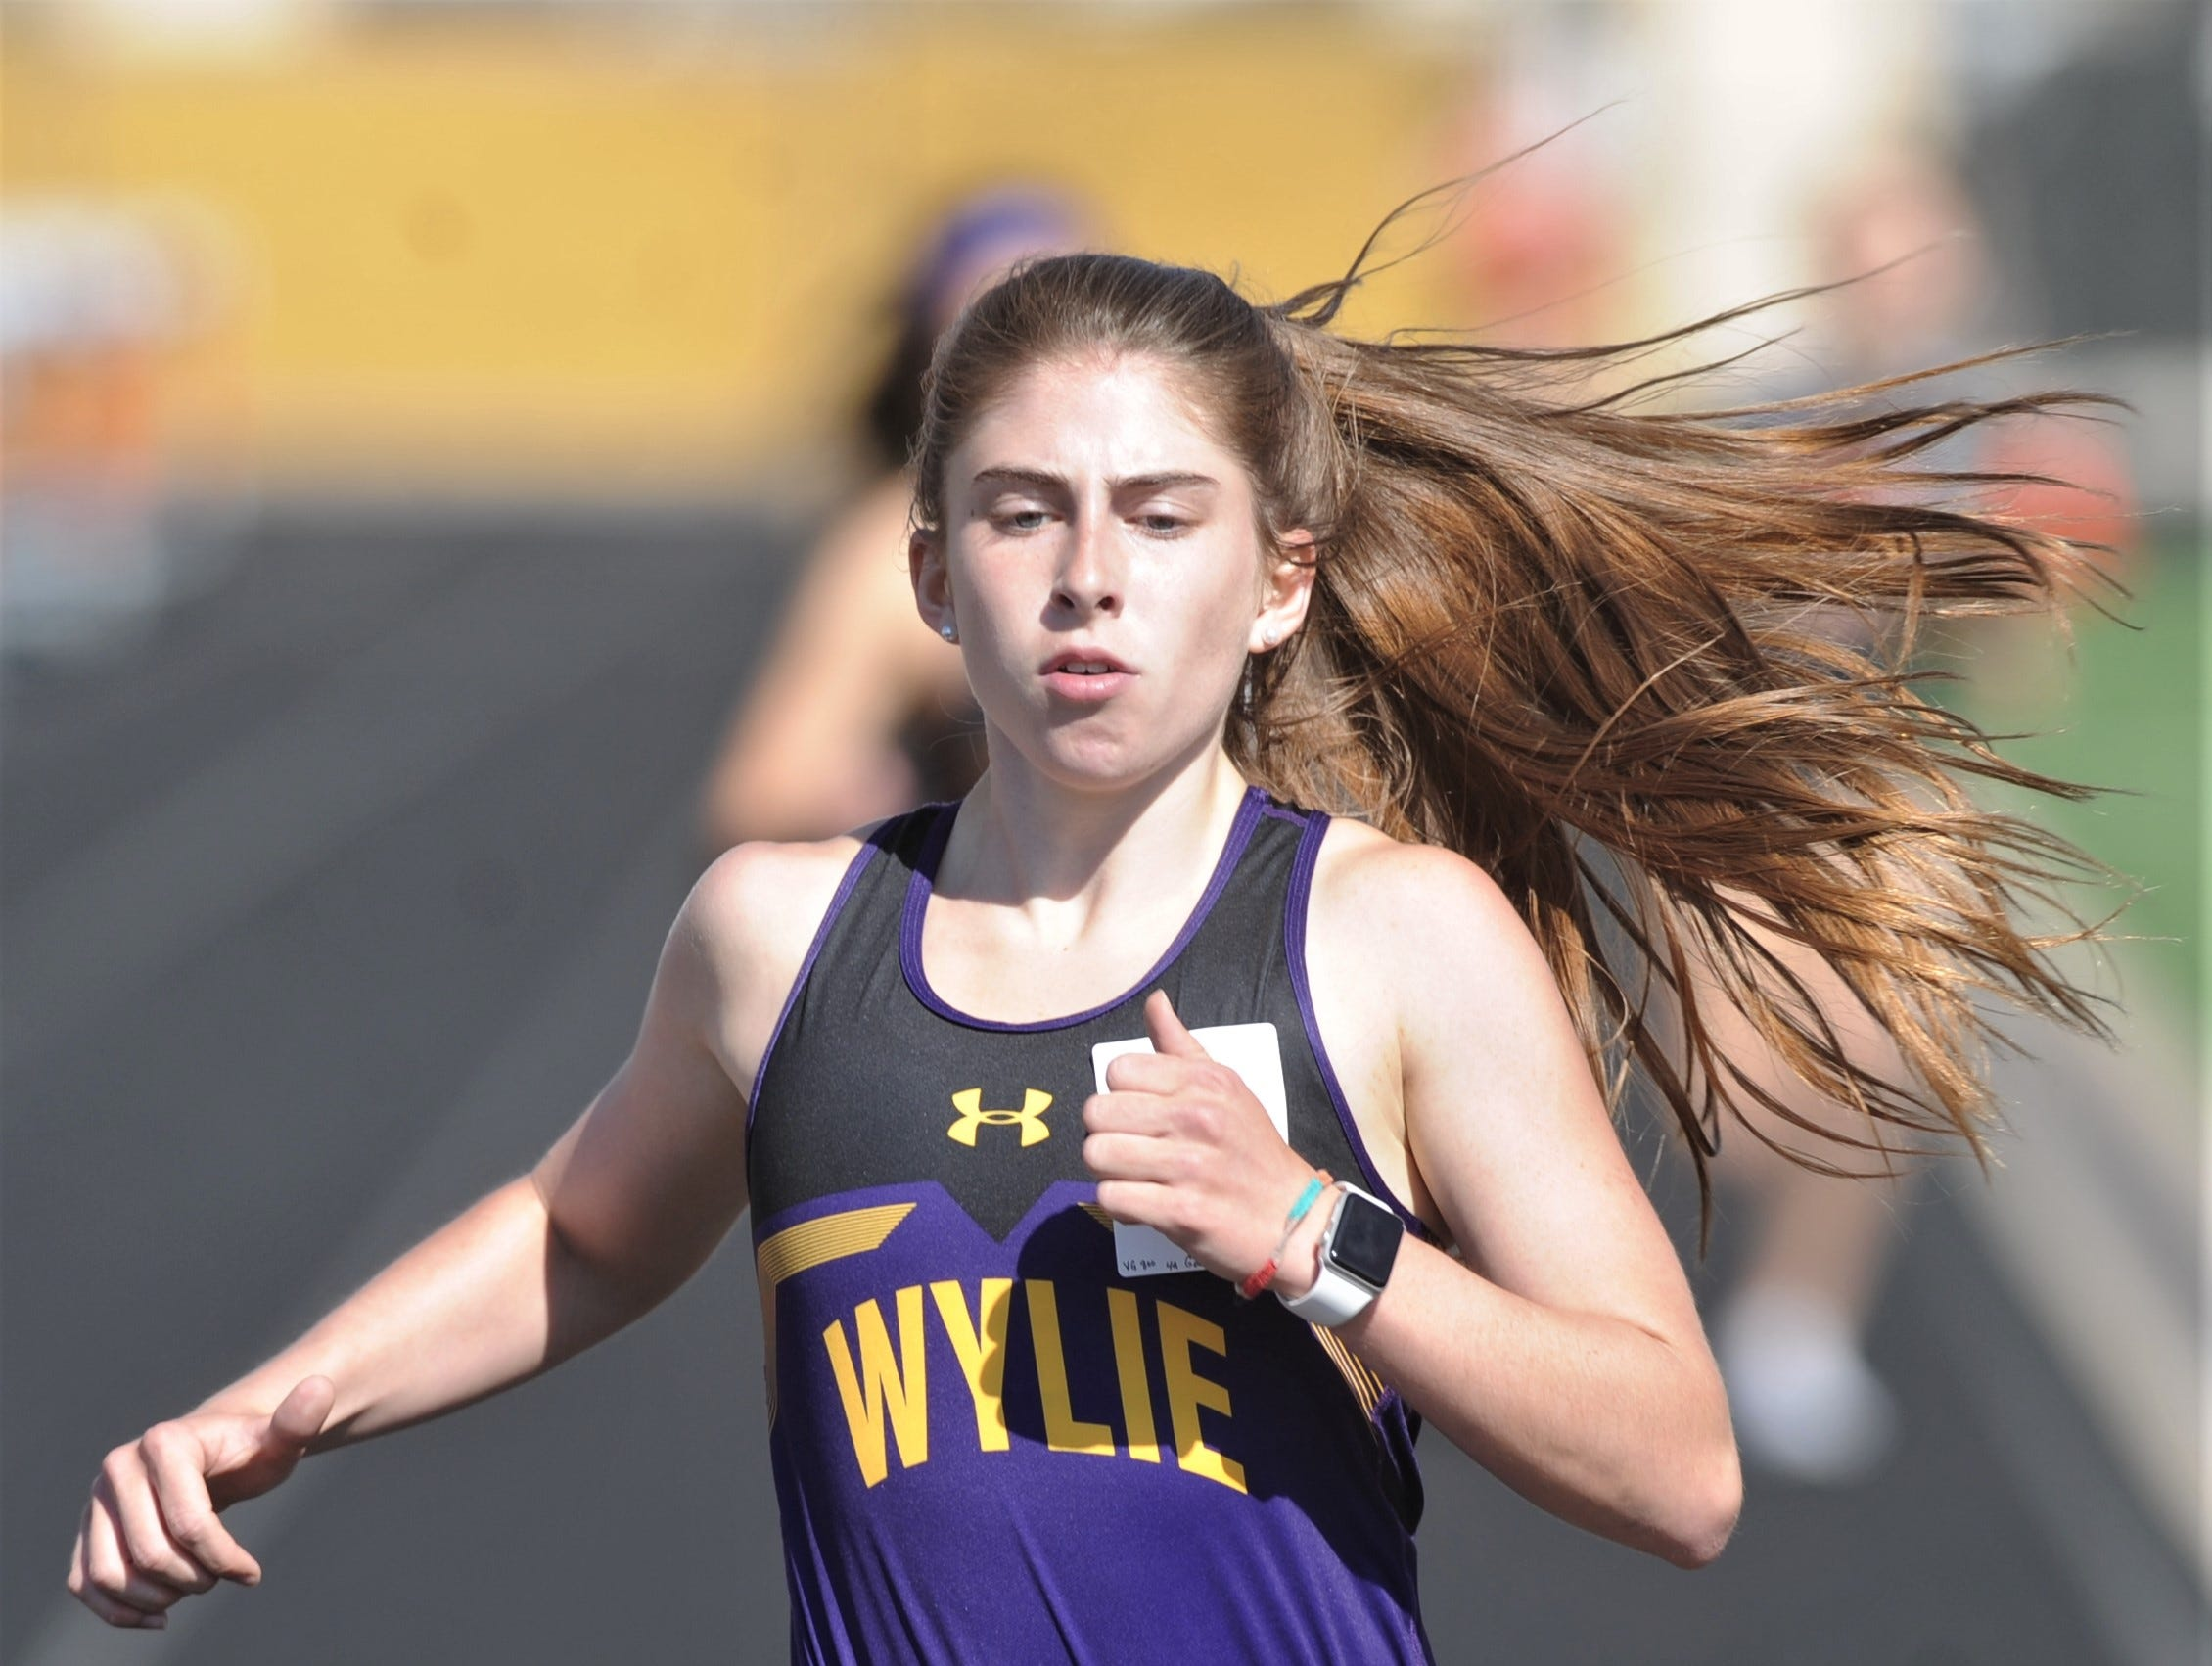 Wylie's Abbigayle Gollihar wins the 800 meters at the District 4-5A track and field meet on Thursday, April 3, 2019, at Aledo's Bearcat Stadium. She turned in a winning time of 2:23.70 to beat out teammate Leandra Benton (2:26.31).